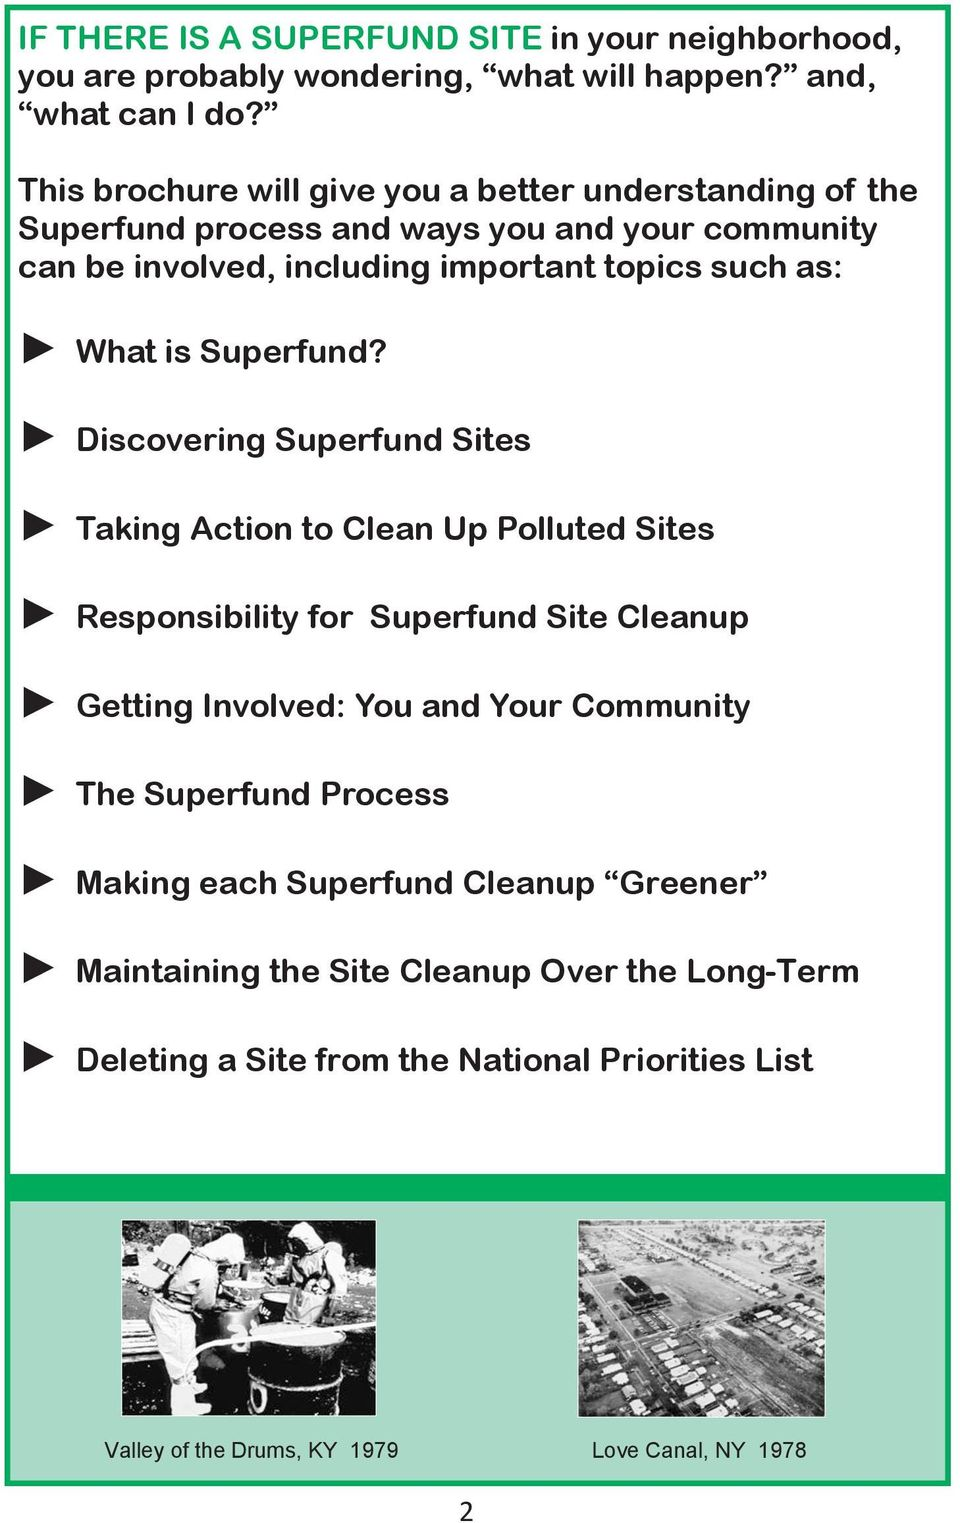 What is Superfund?